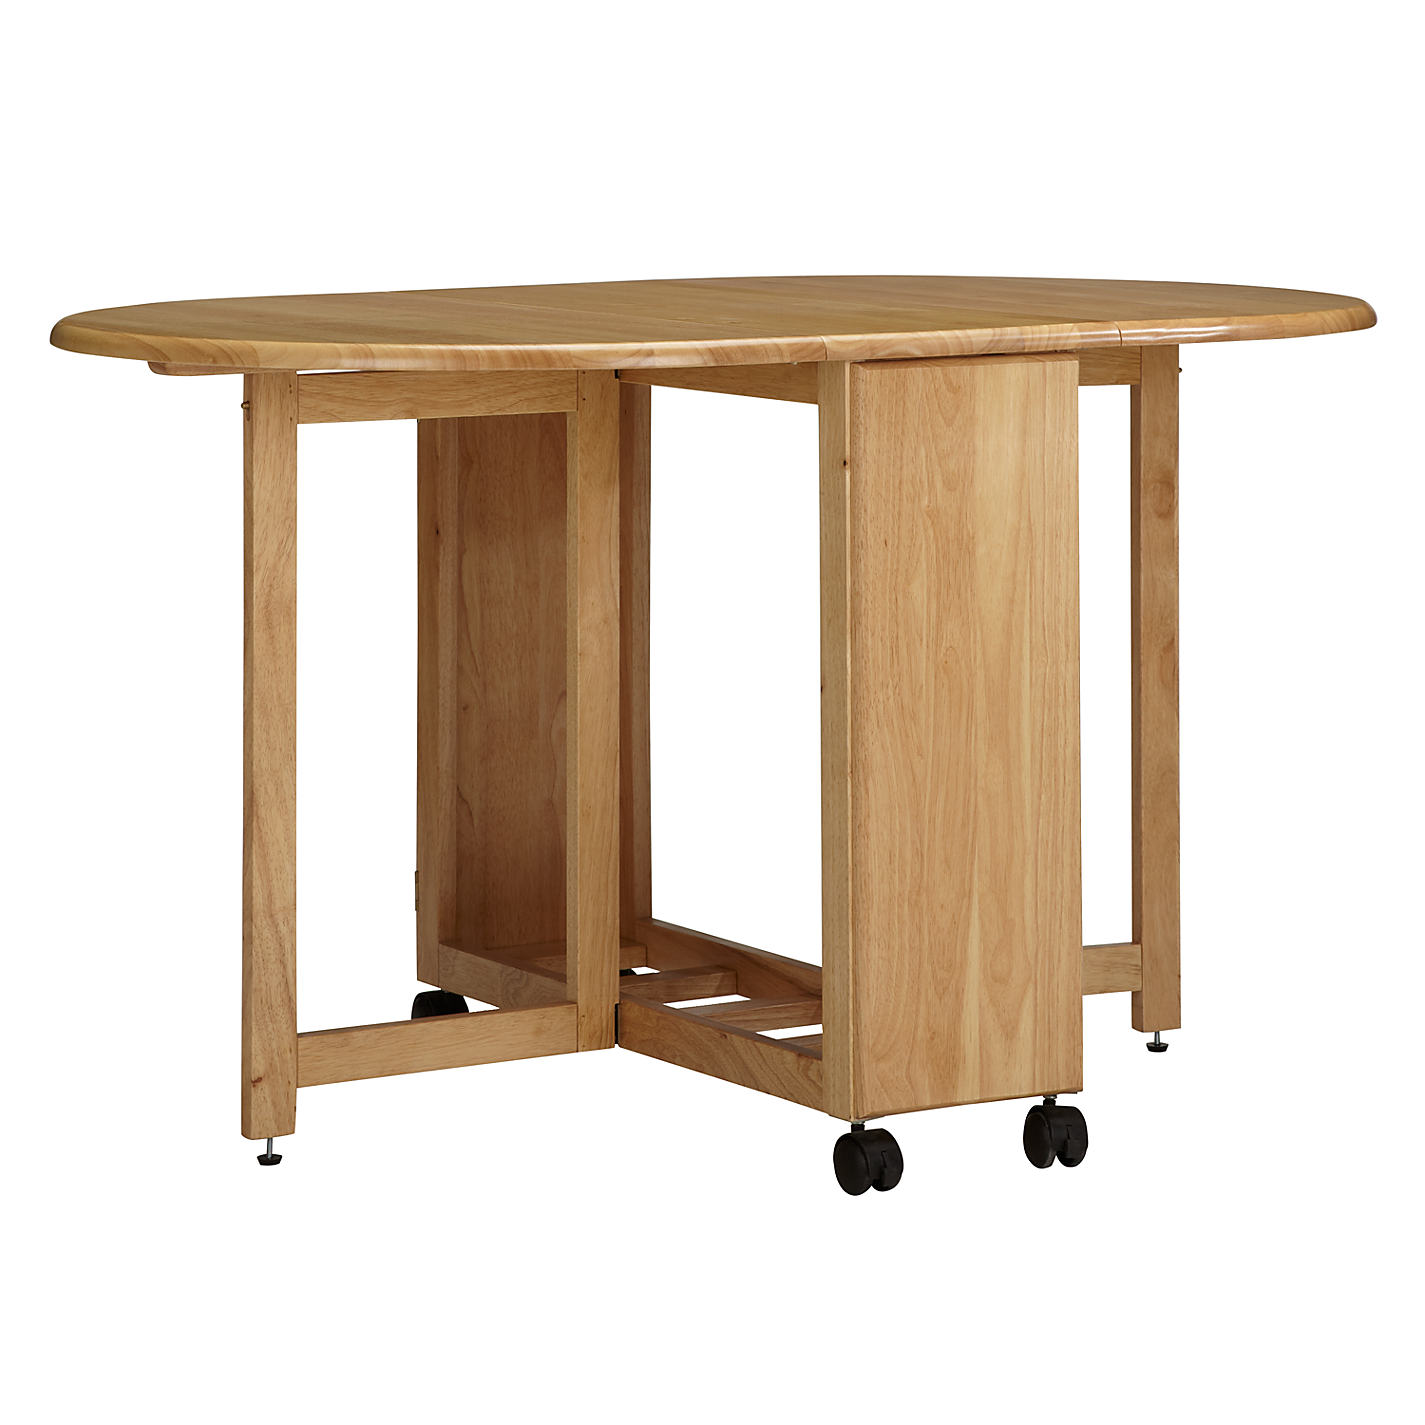 Folding Dining Room Chair Buy John Lewis Butterfly Folding Dining Table And Four Chairs